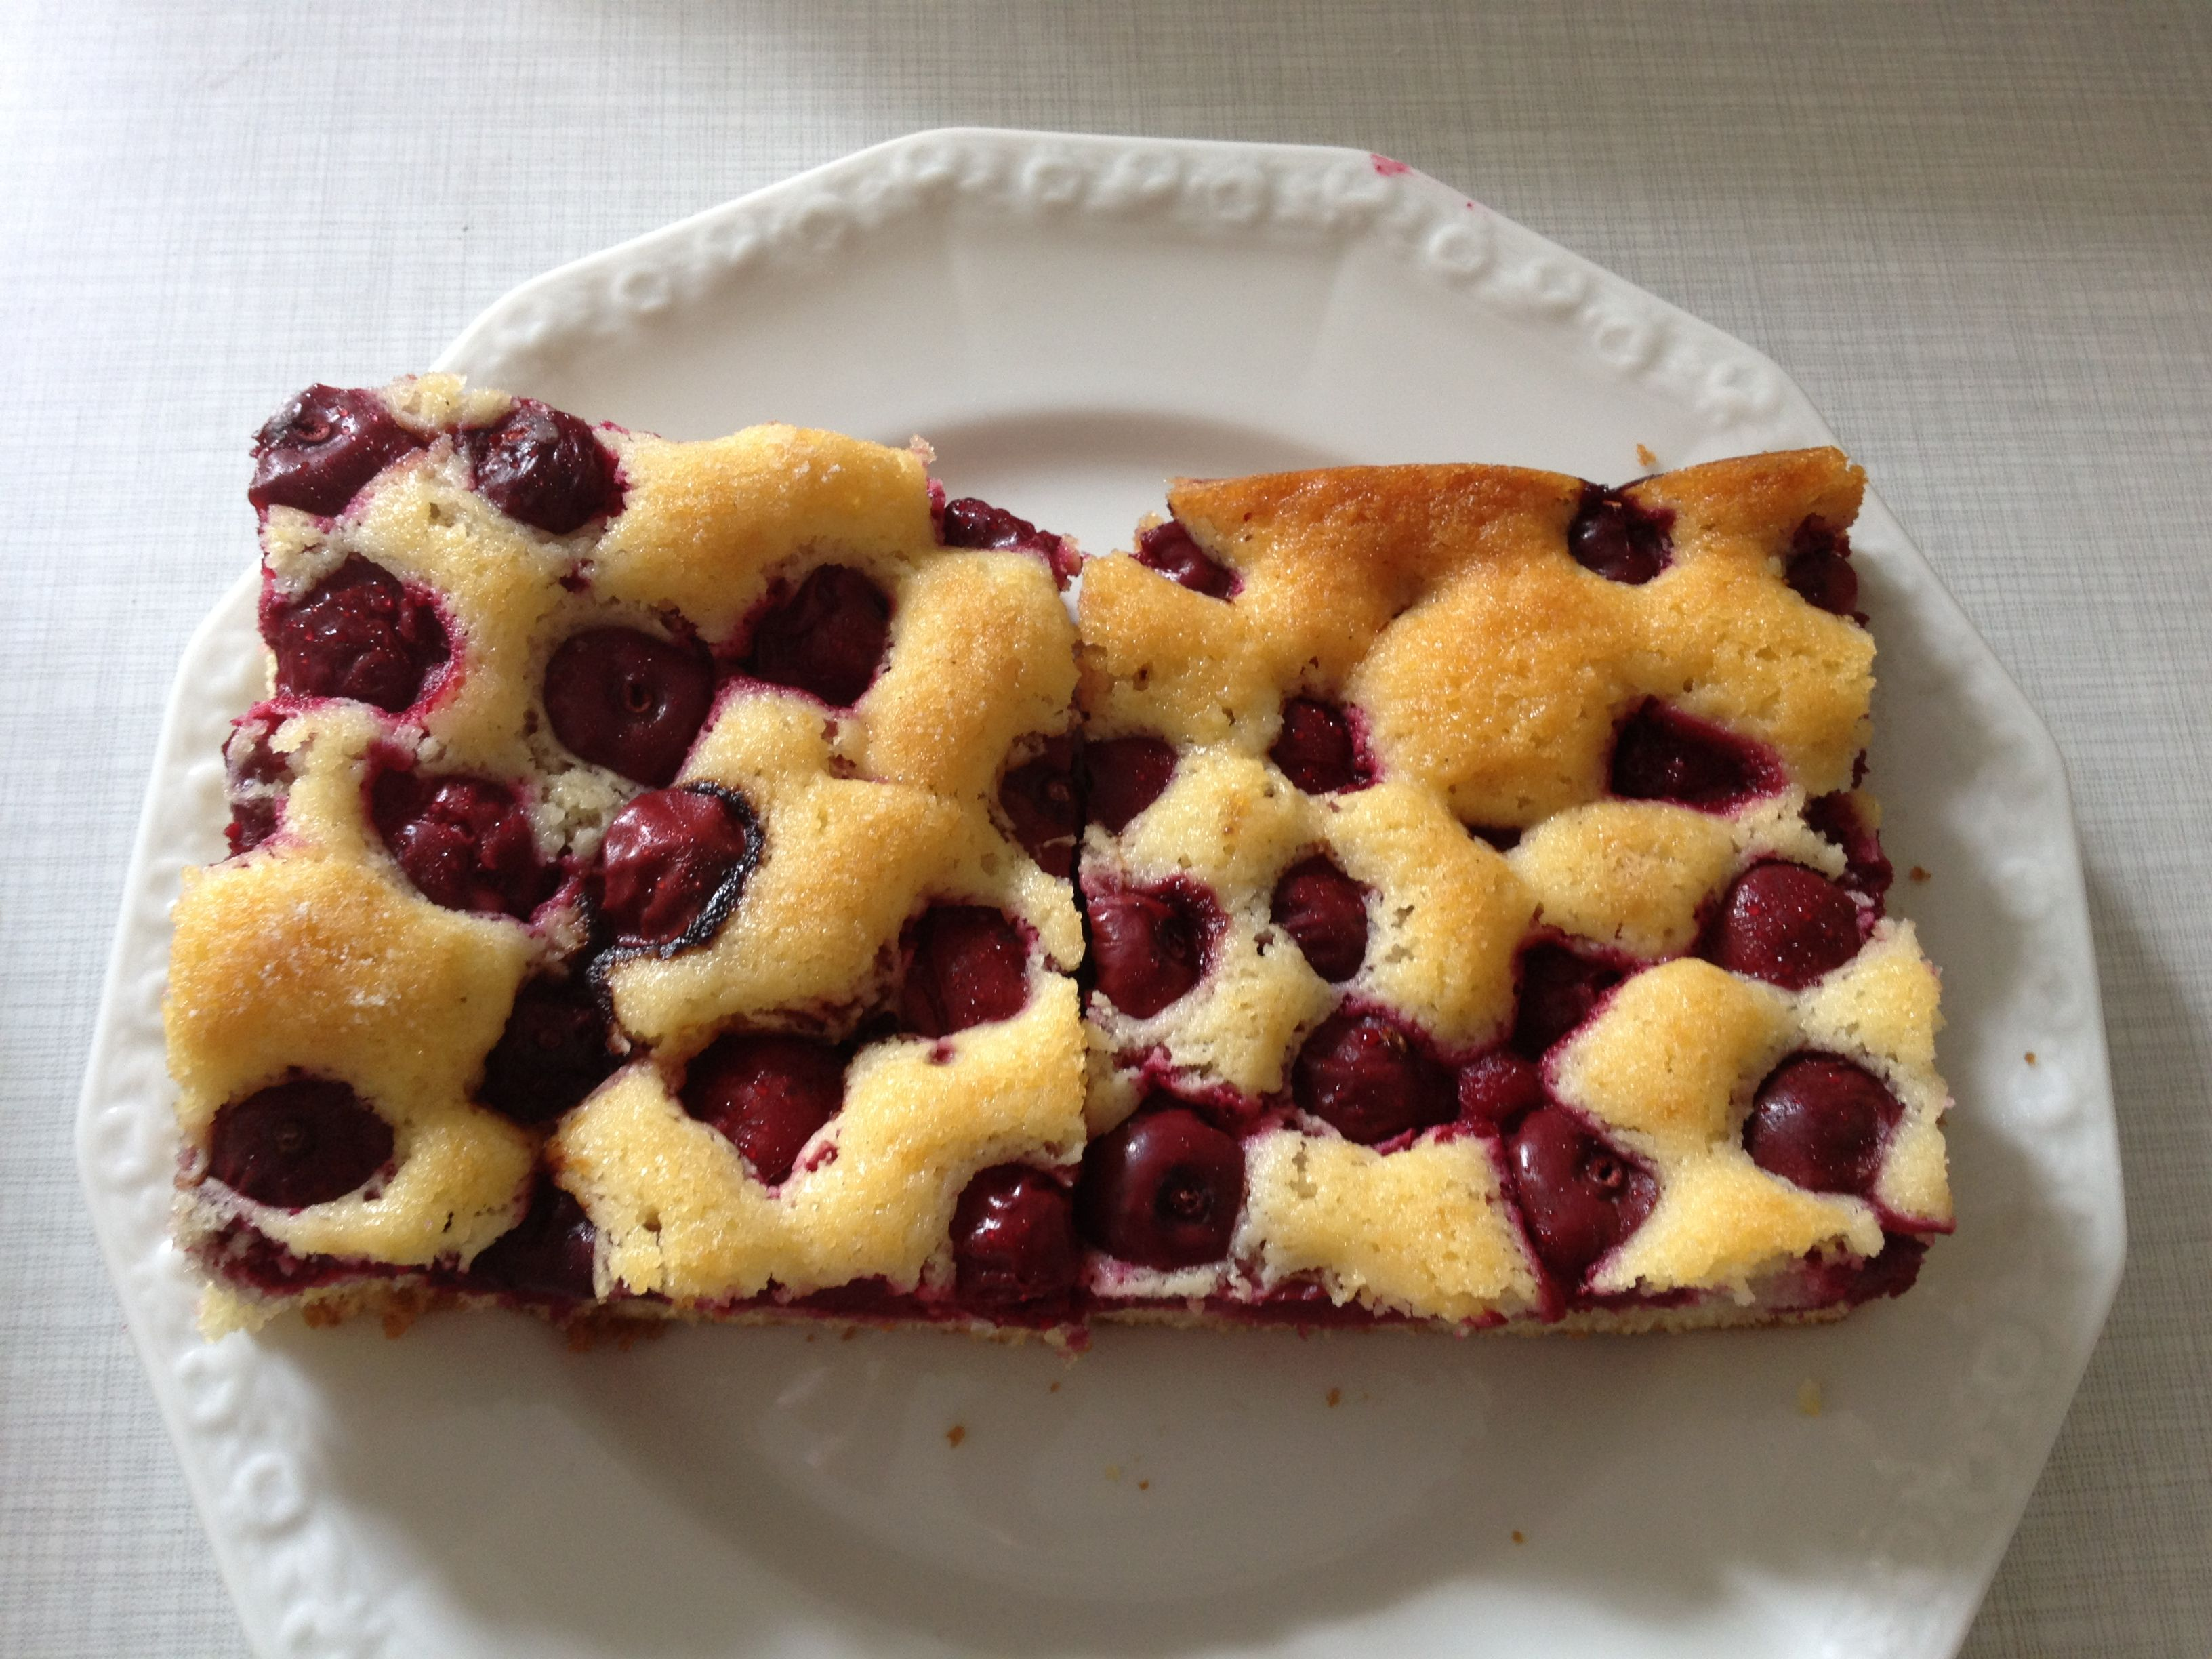 Sheet Cake with Sour Cherries